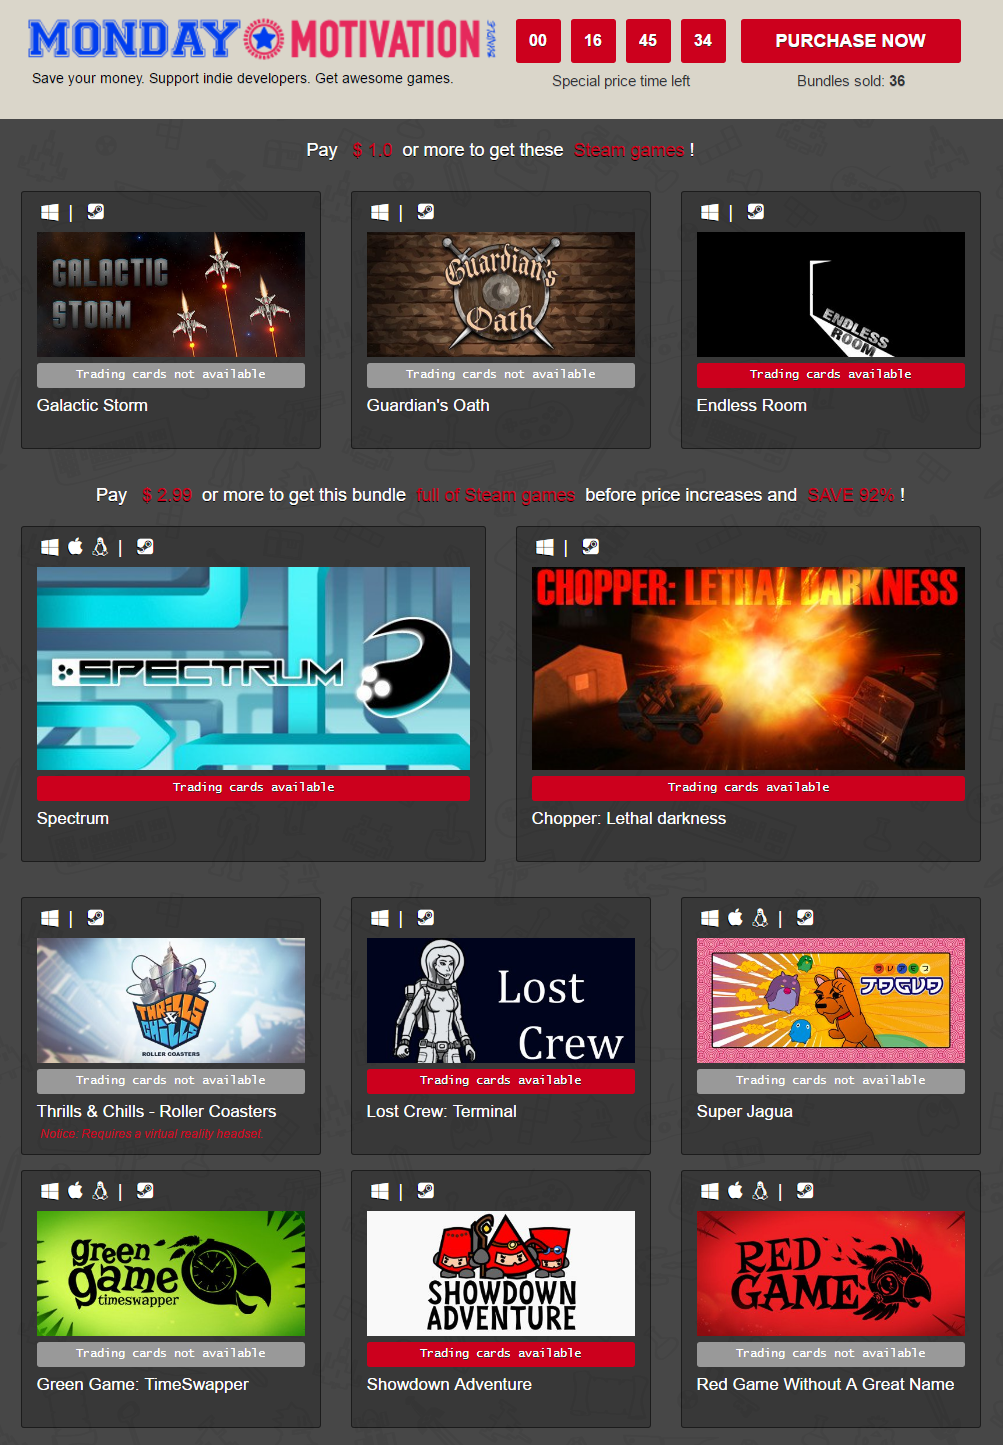 IndieGala Monday Motivation Bundle of Steam games.png